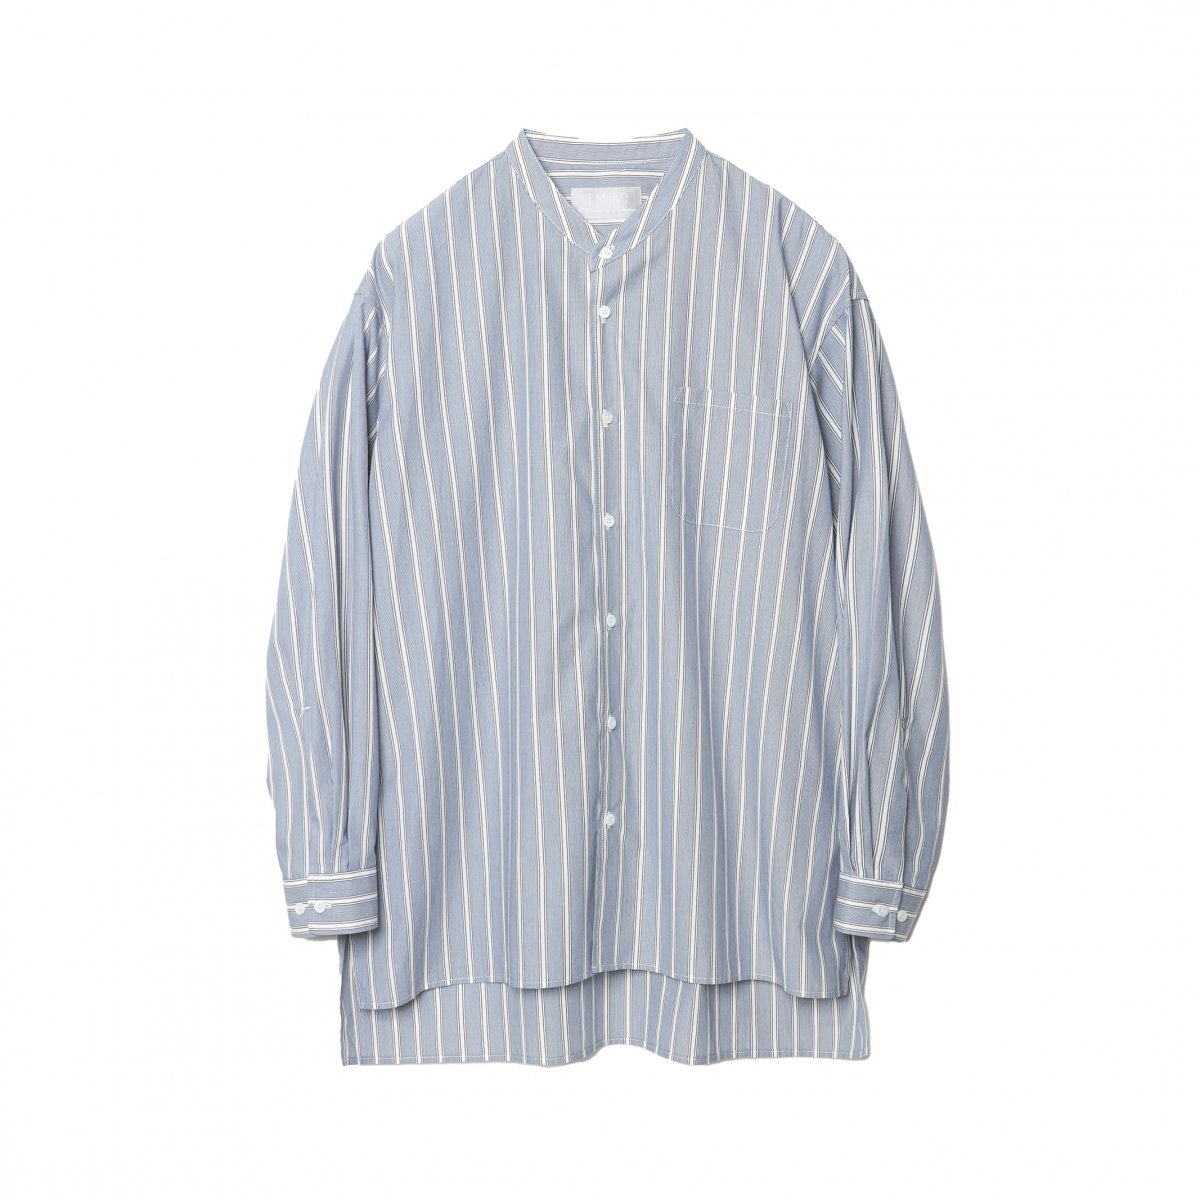 <img class='new_mark_img1' src='https://img.shop-pro.jp/img/new/icons5.gif' style='border:none;display:inline;margin:0px;padding:0px;width:auto;' />FINE GIZA COTTON V-COLLAR SHIRT / STRIPE